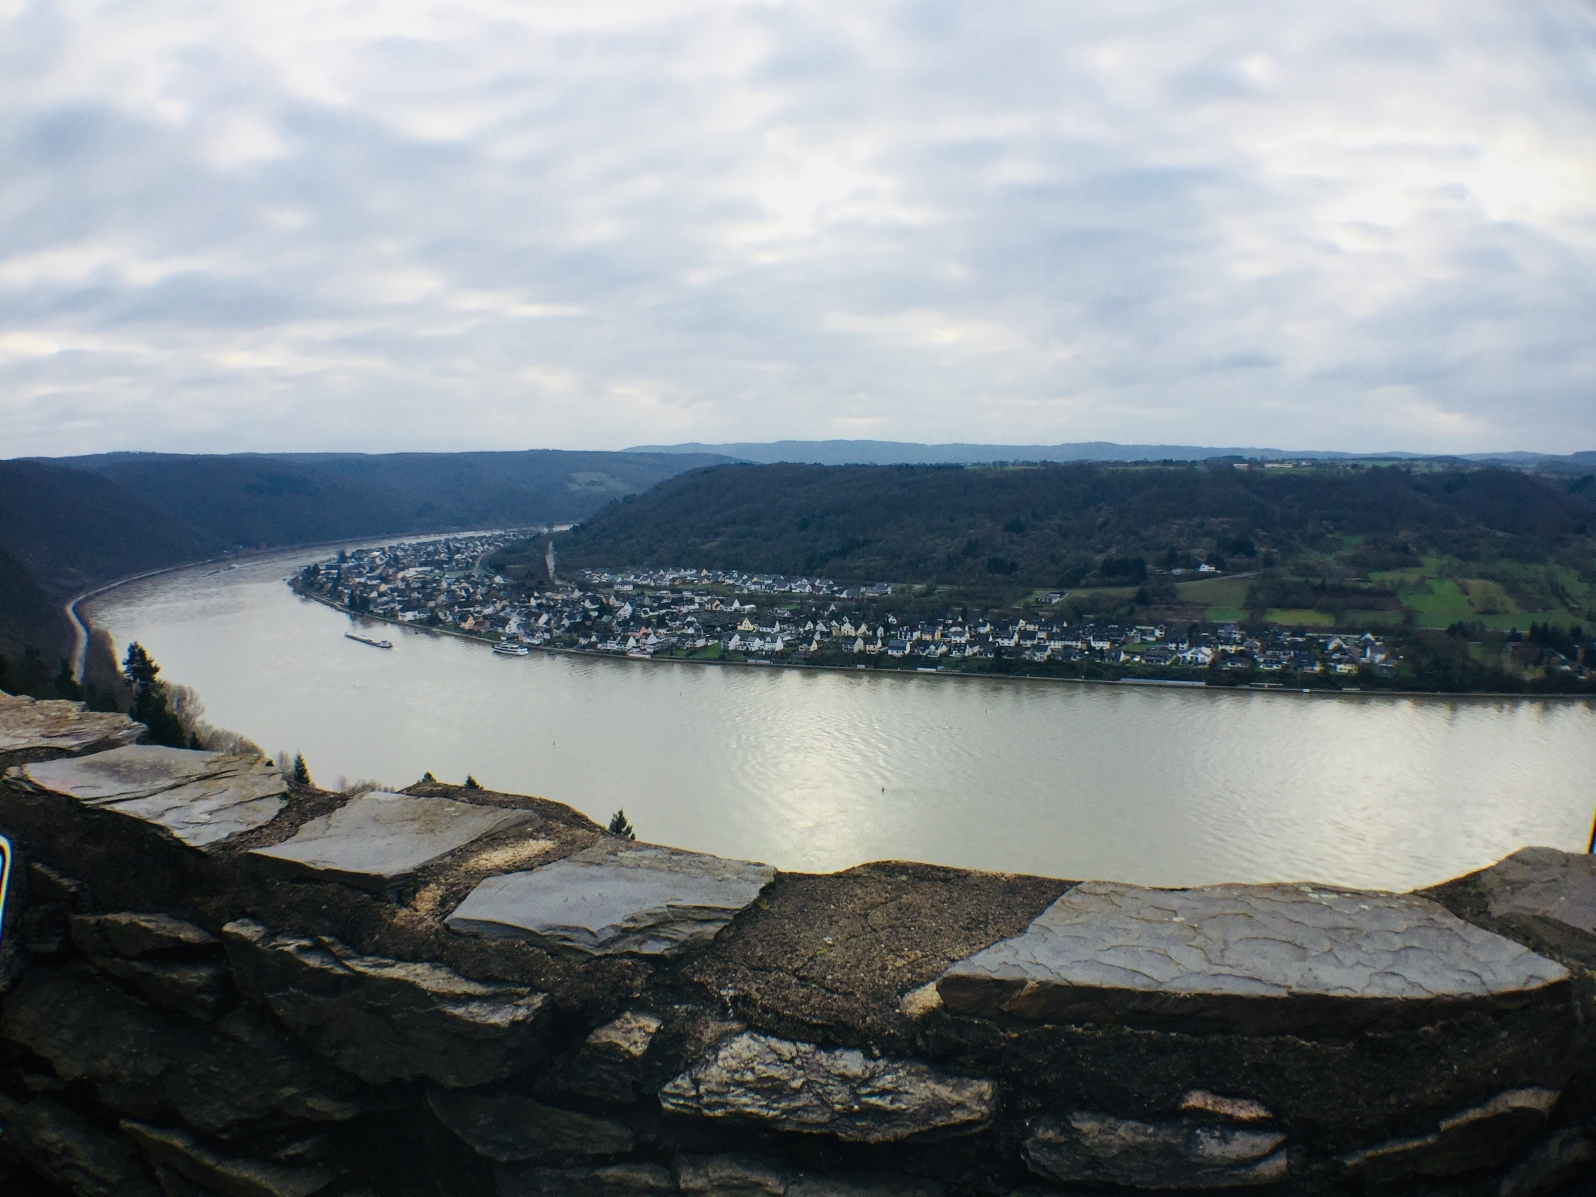 View of the Rhine River from the garden